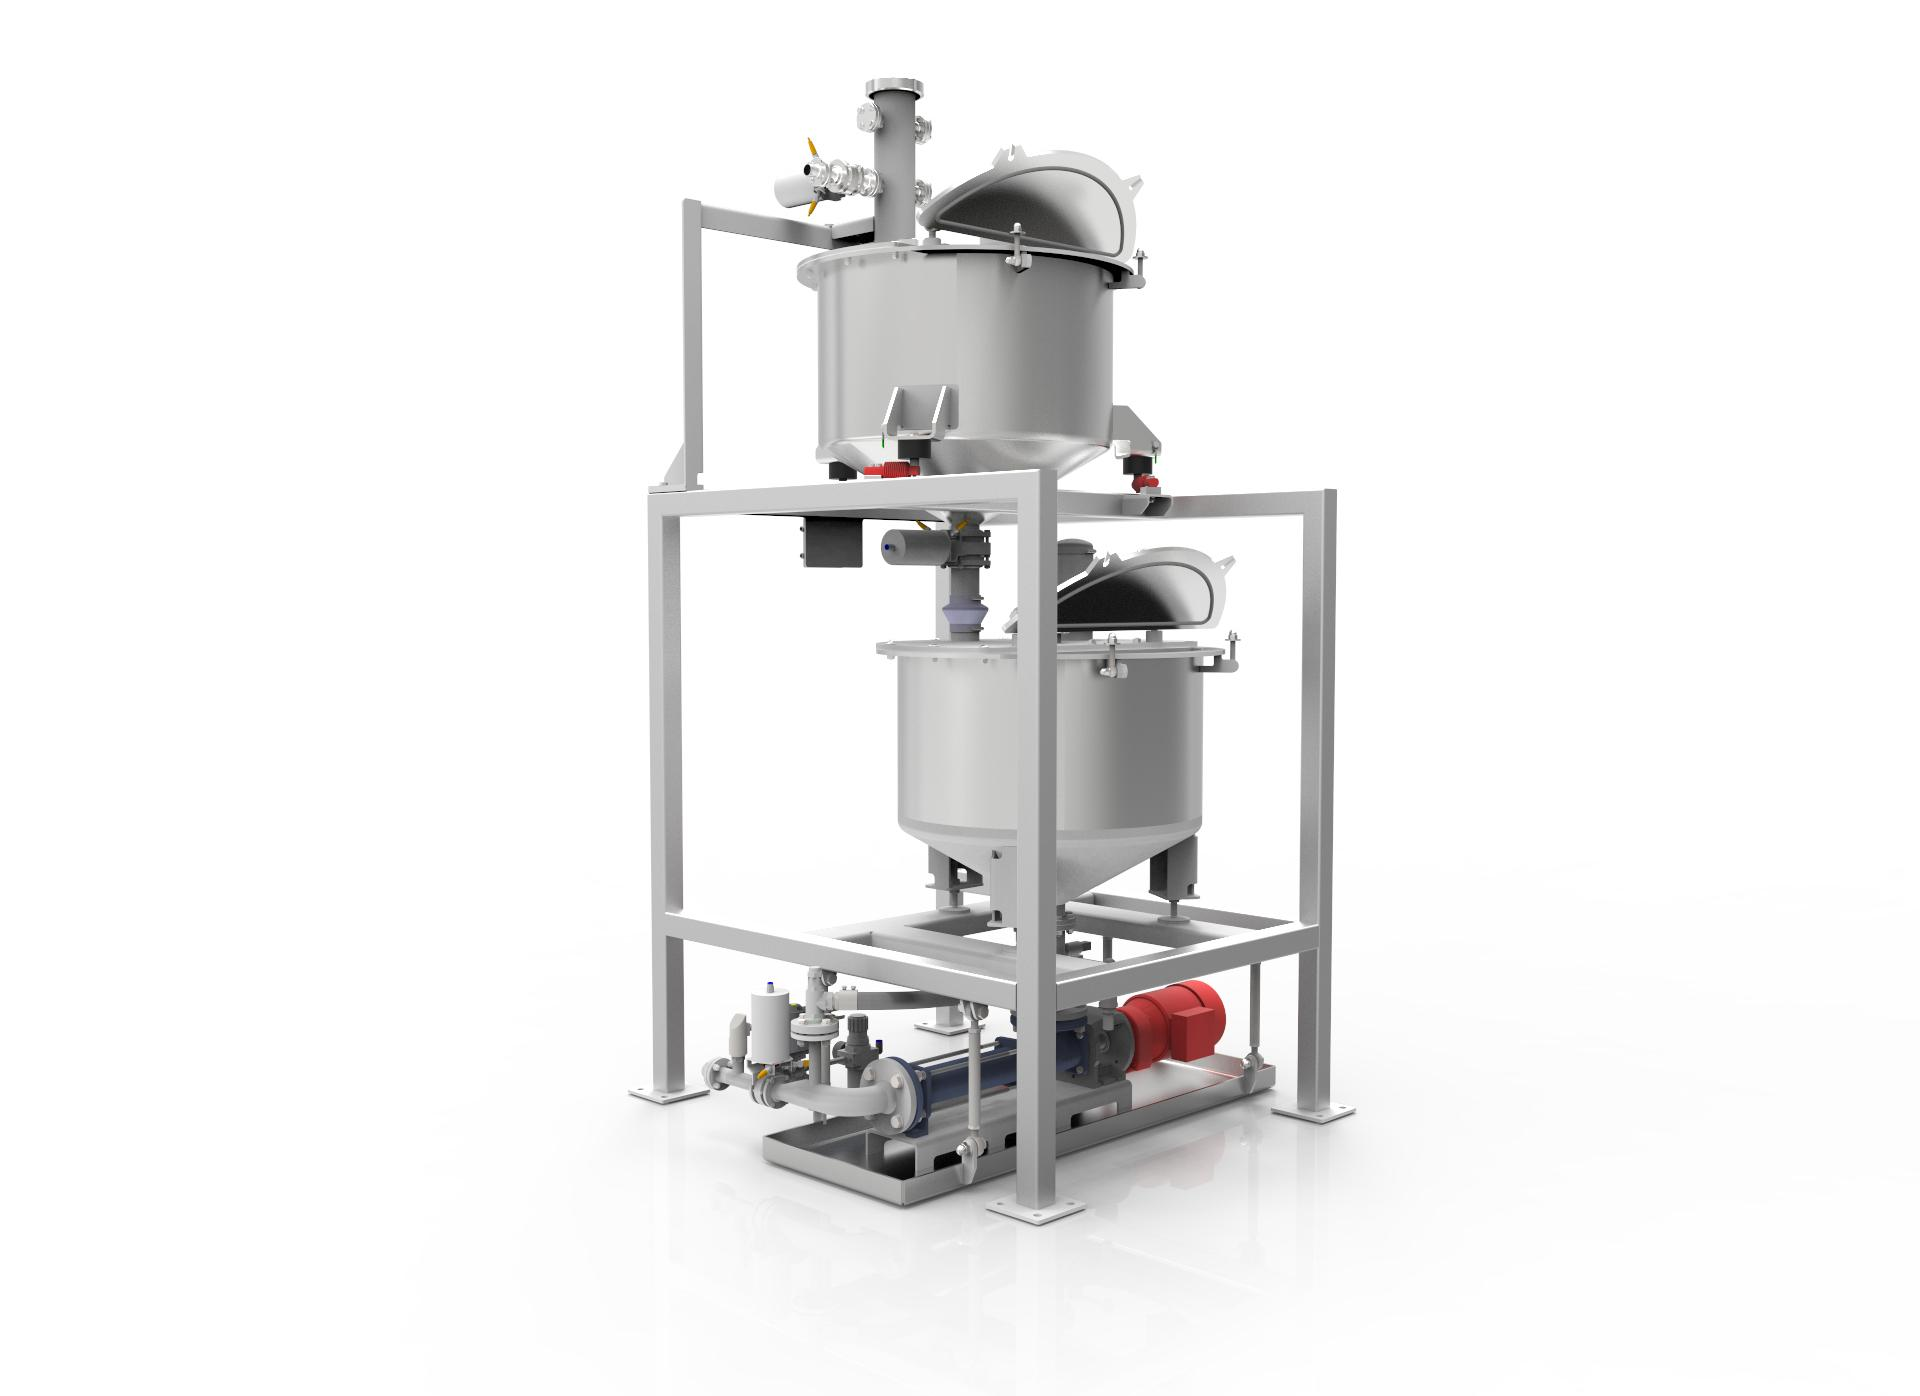 Liquid dosing unit